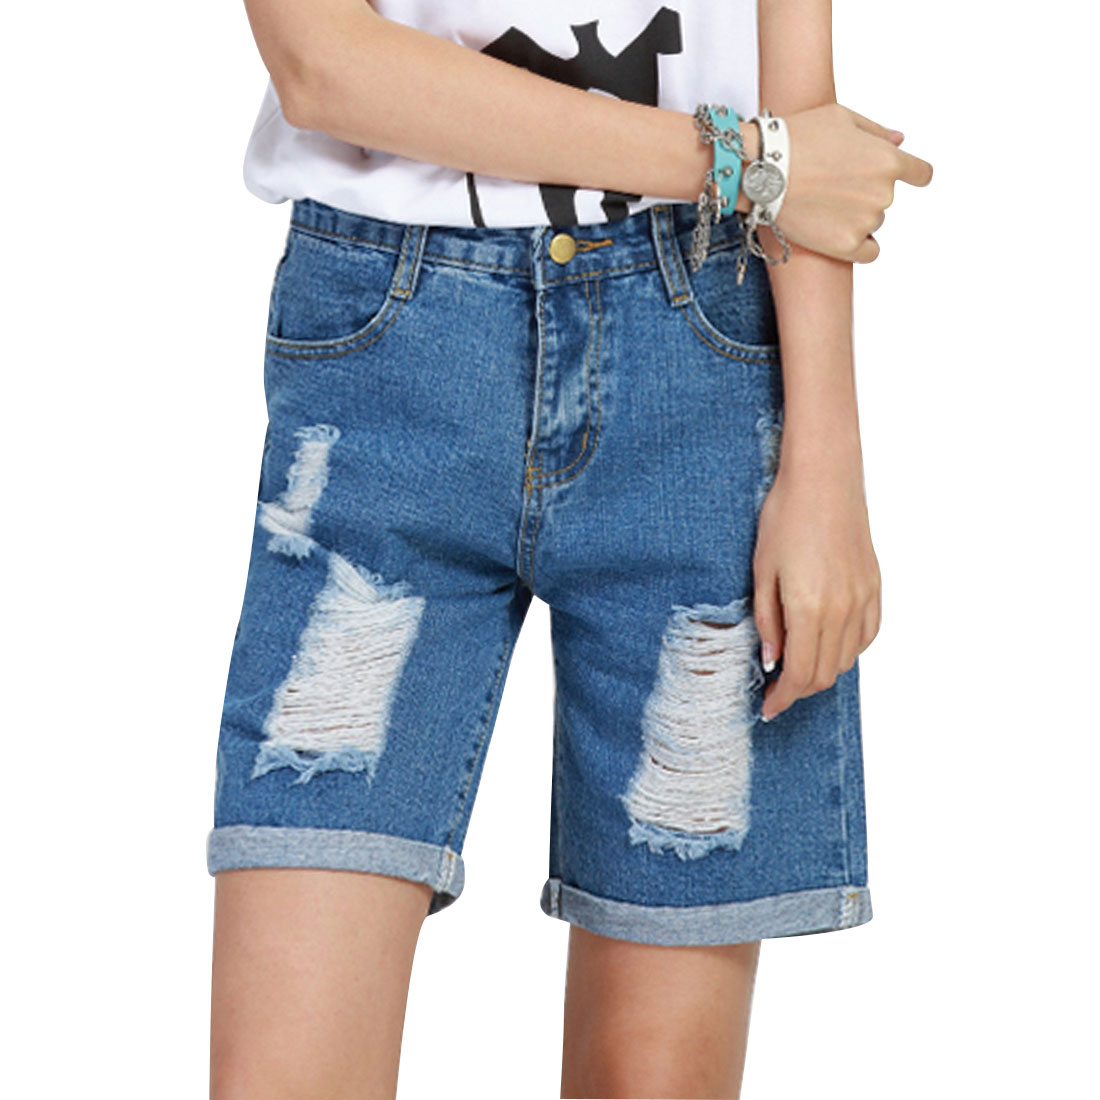 Womens Jean Shorts Sale Promotion-Shop for Promotional Womens Jean ...